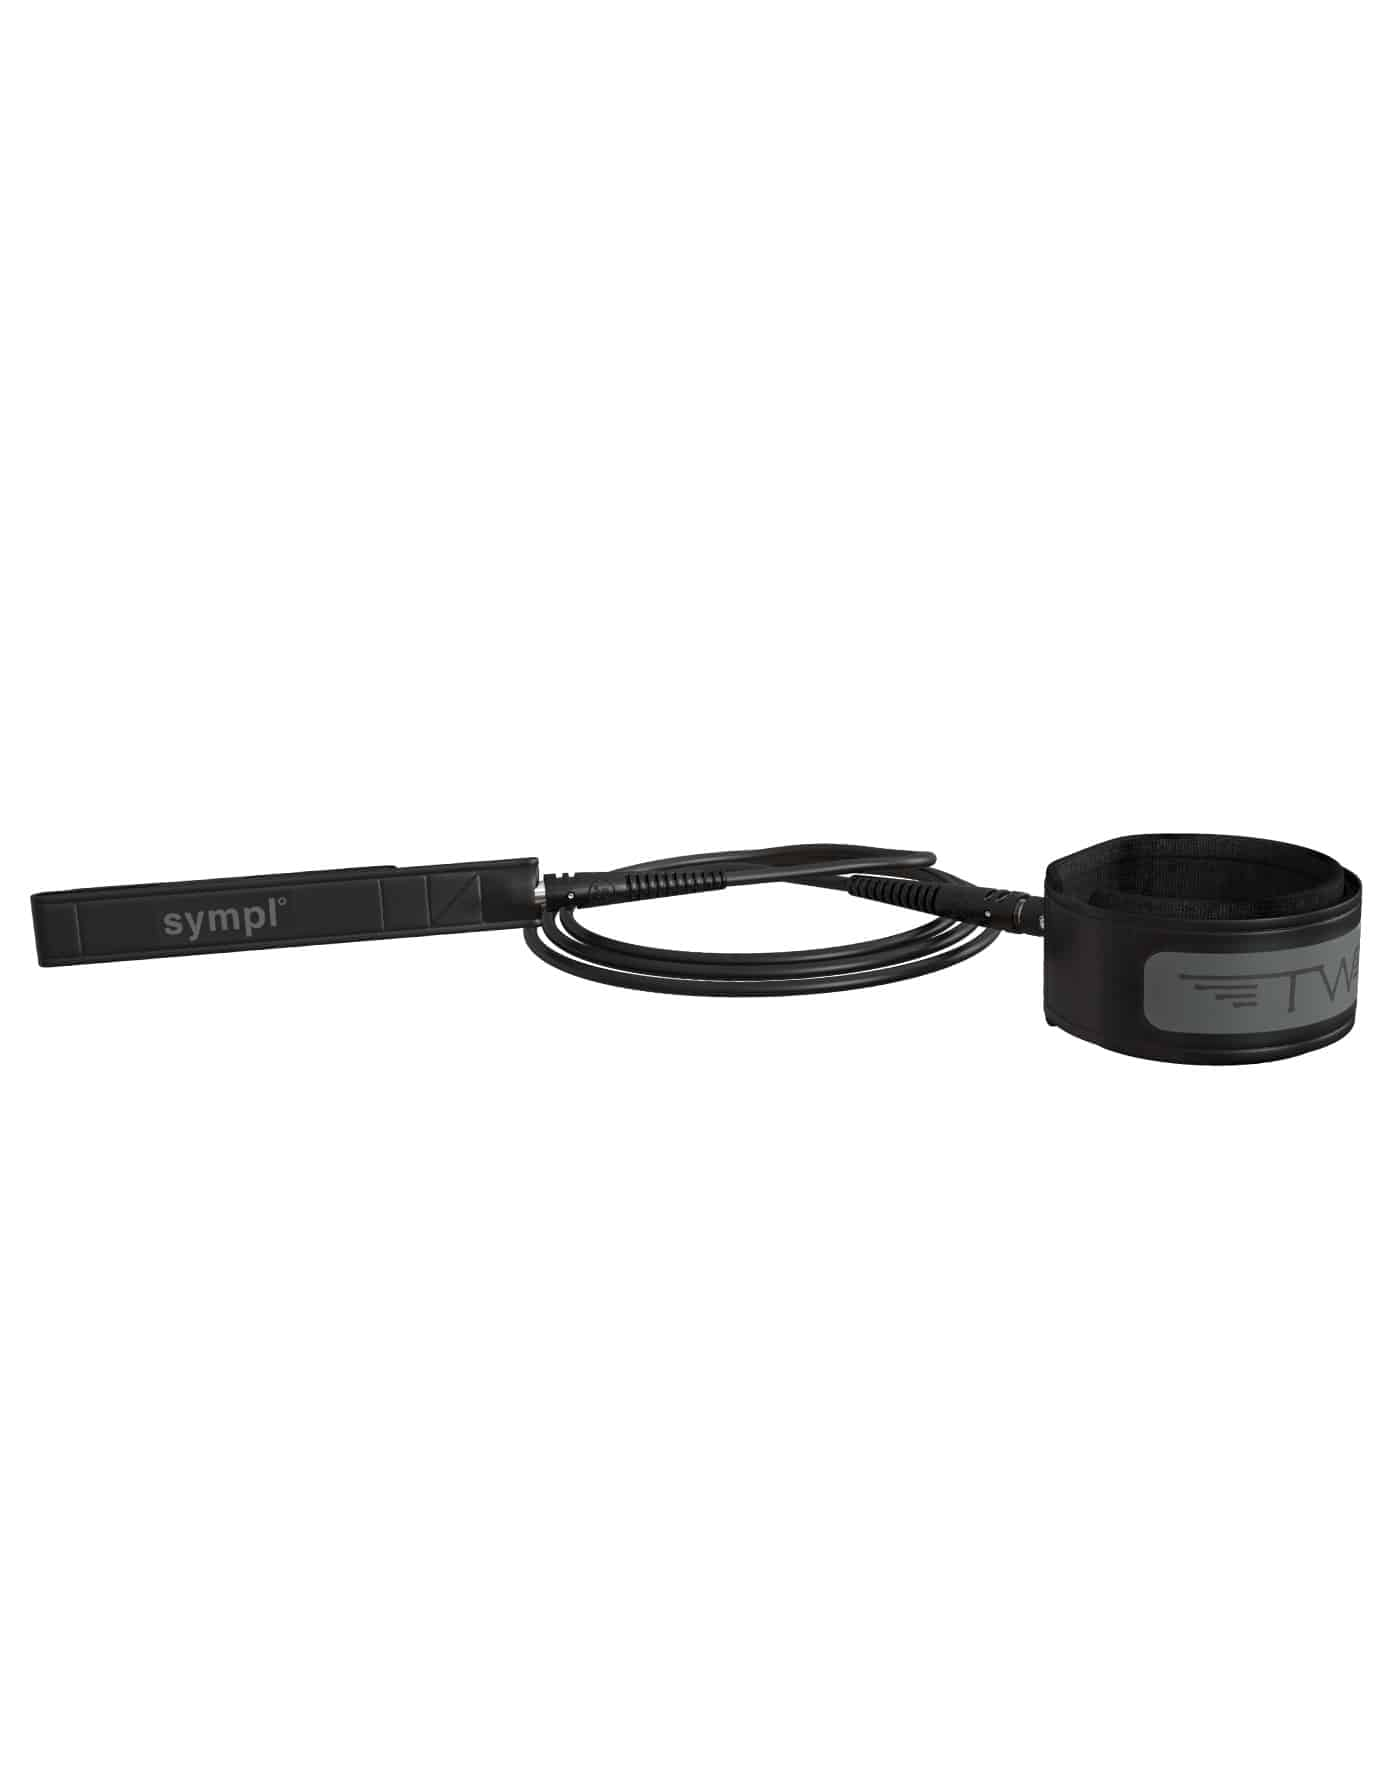 Sympl Tyler Warren Re-Leash - 6ft - Black